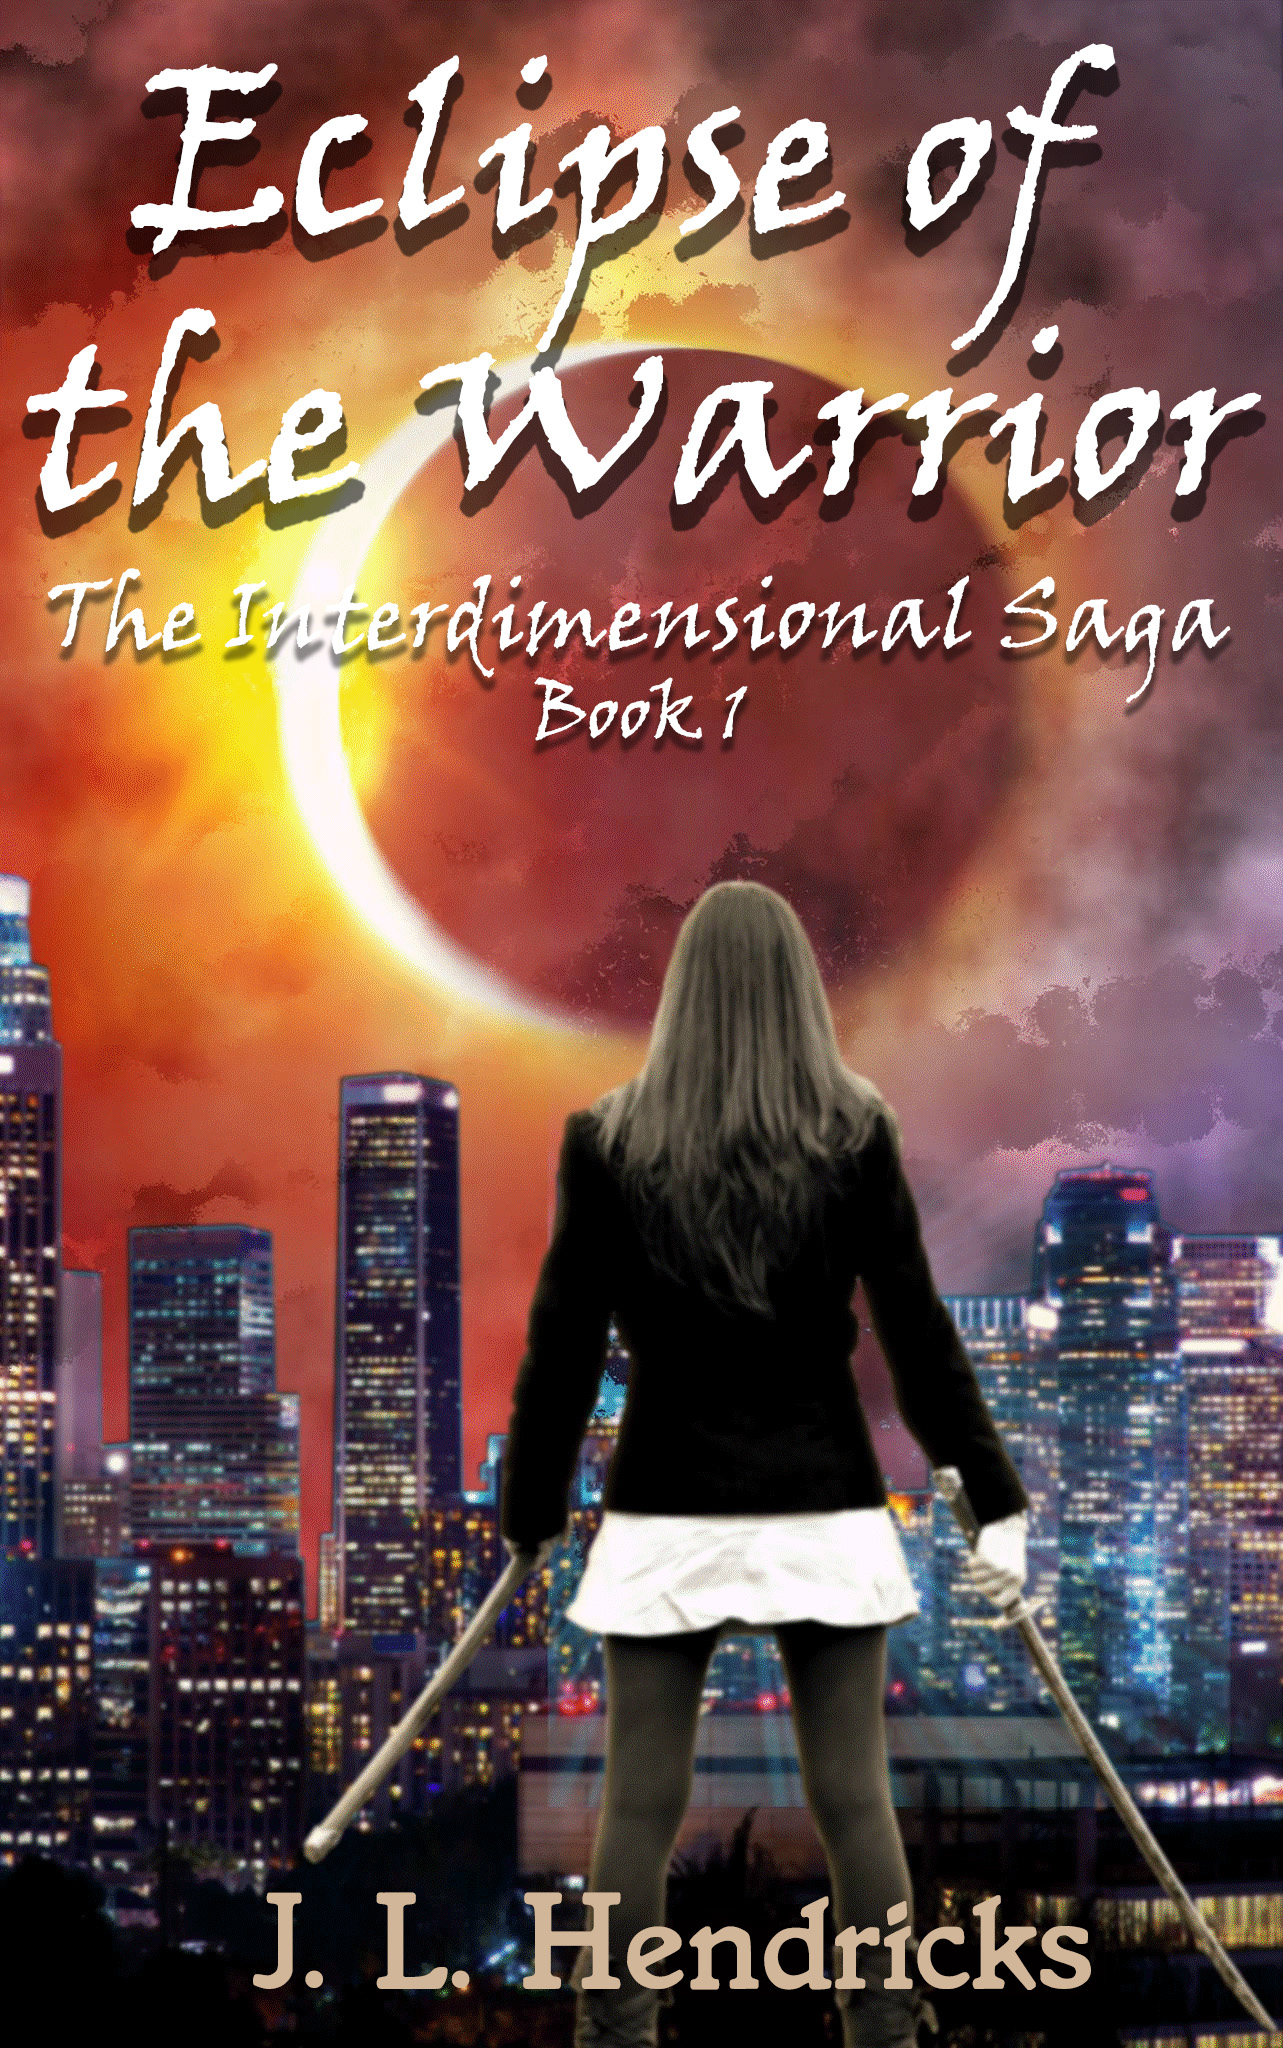 Eclipse of the Warrior is now only $0.99!